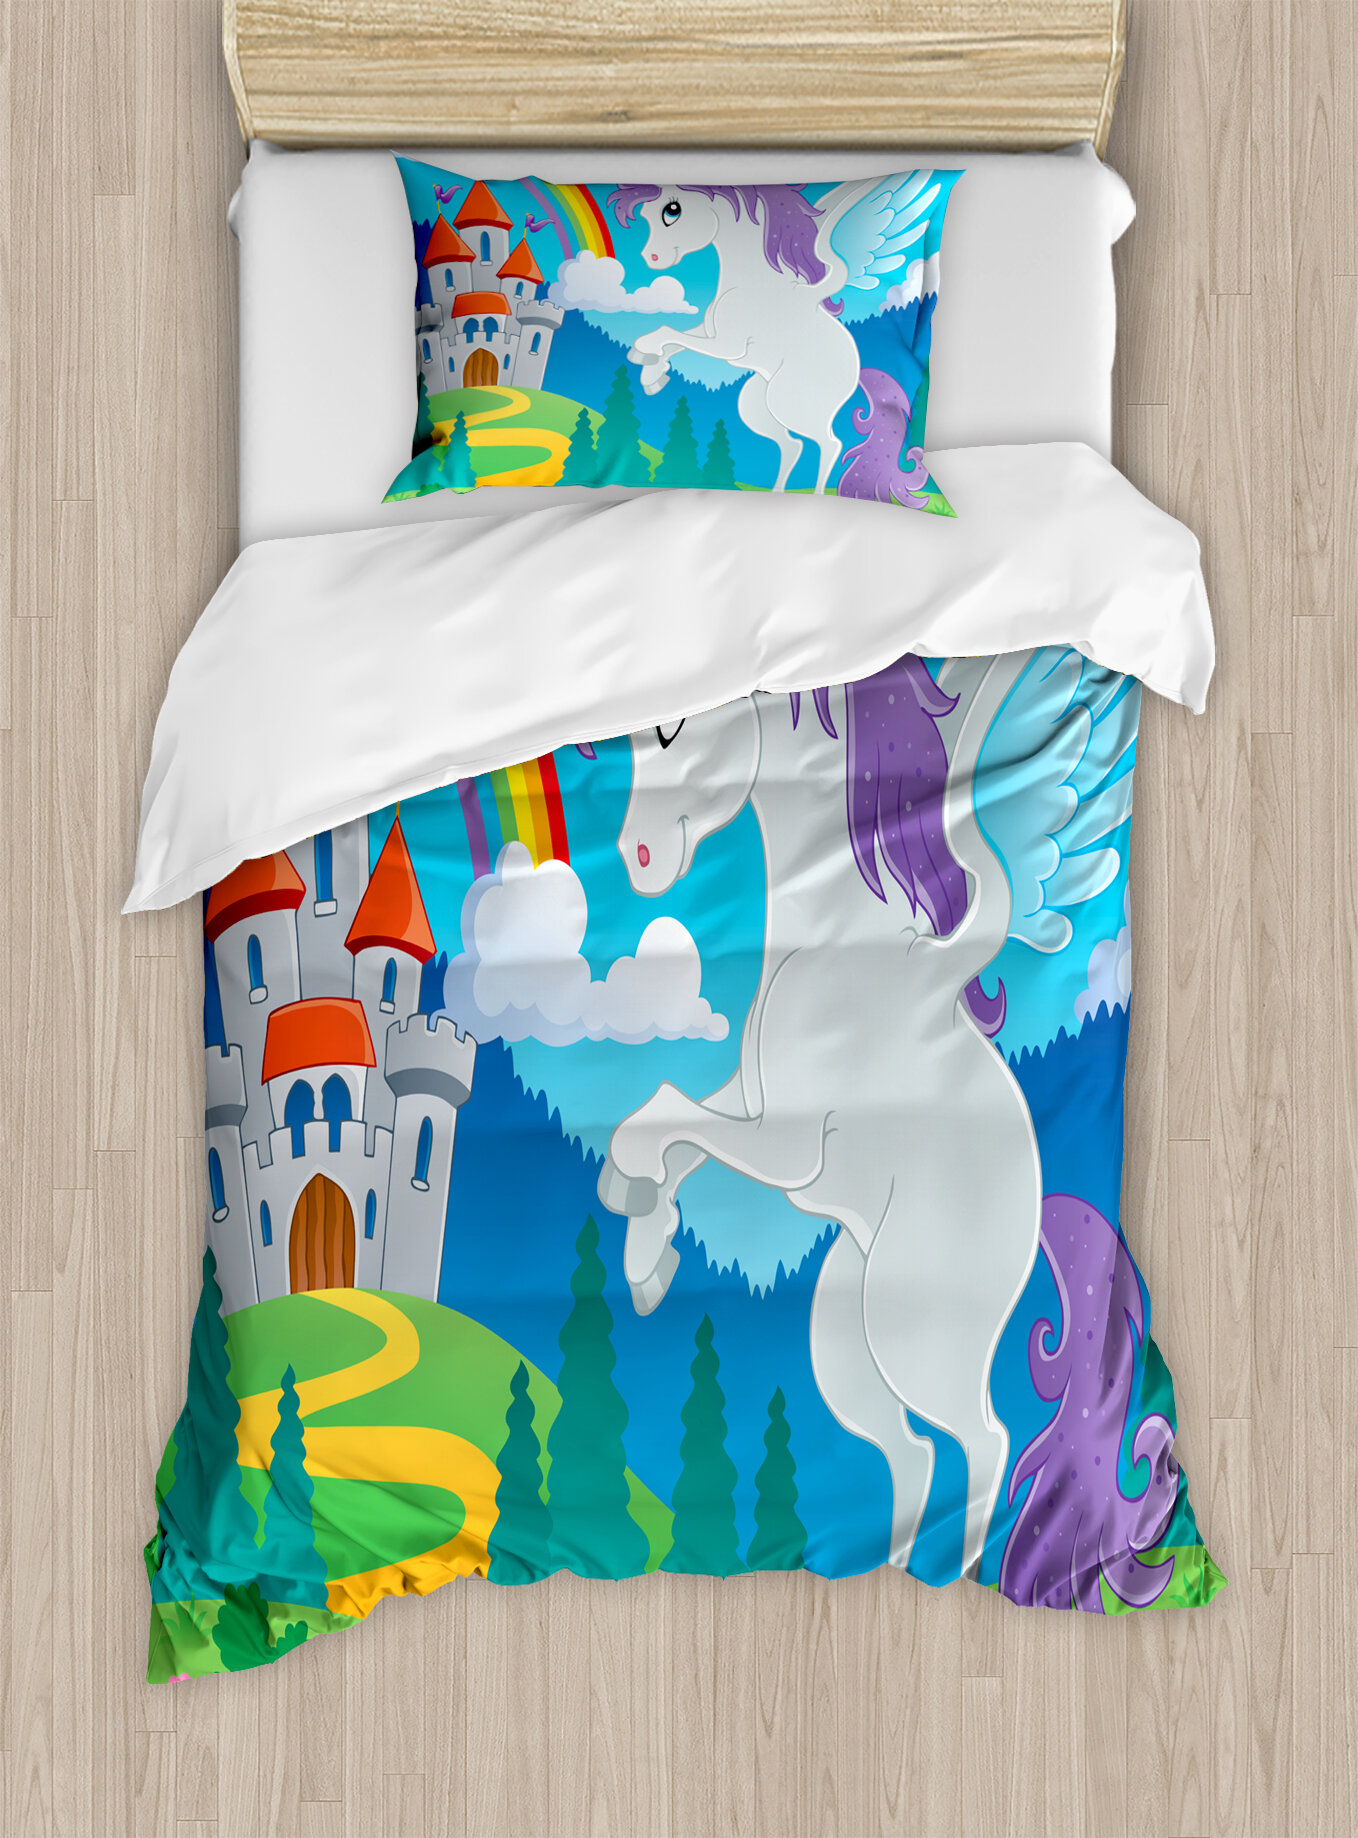 Kids King Size Bedding.Kids Decor King Size Duvet Cover Set Fantasy Myth Unicorn With Rainbow And Medieval Castle Fairy Tale Cartoon Design Decorative 3 Piece Bedding Set